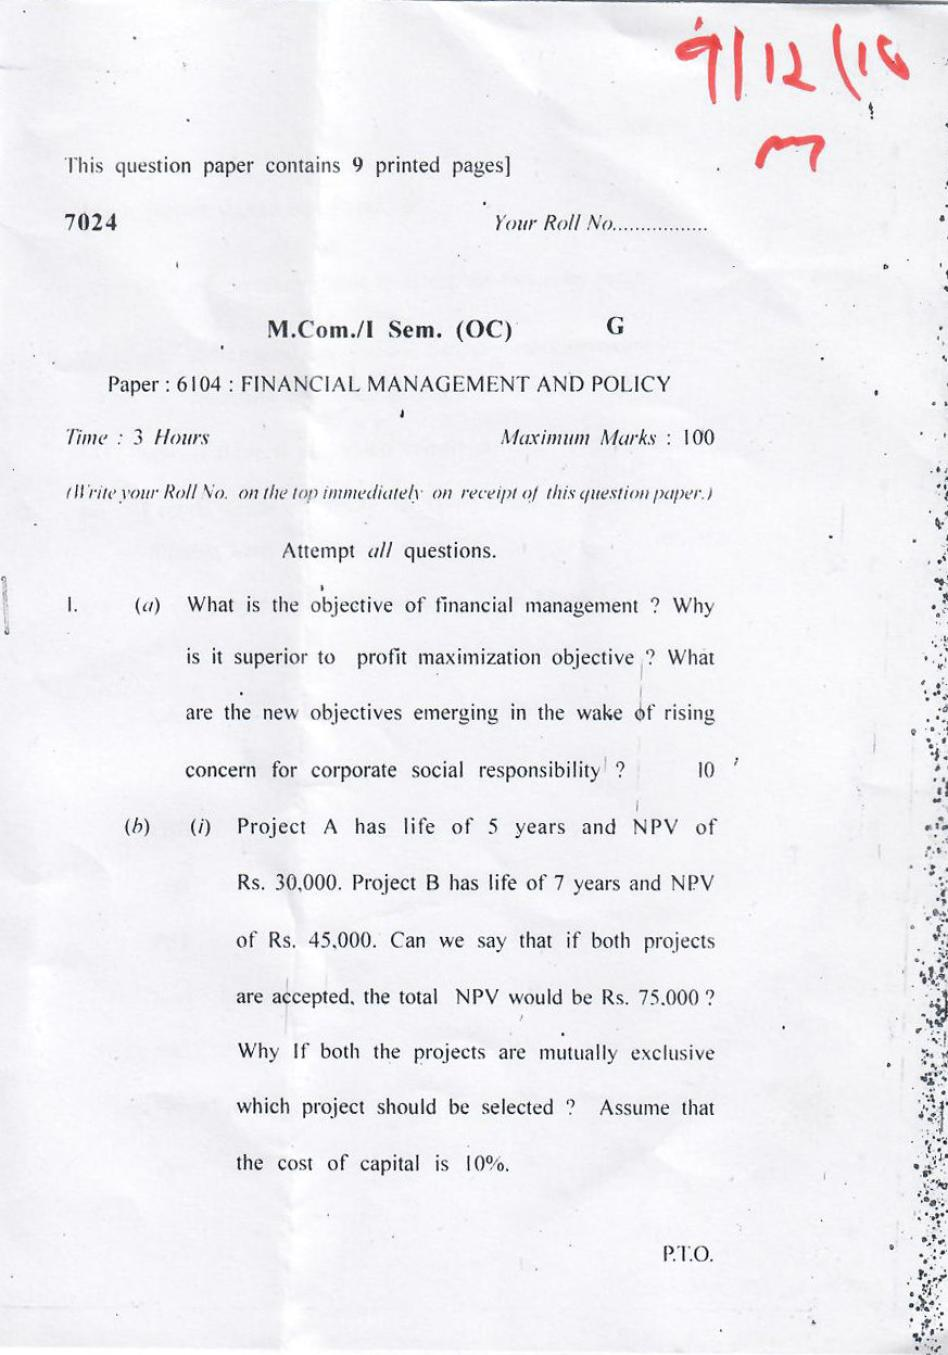 DU SOL M.Com Question Paper 1st Year 2017 Sem 1 Financial Management And Policy - Page 1